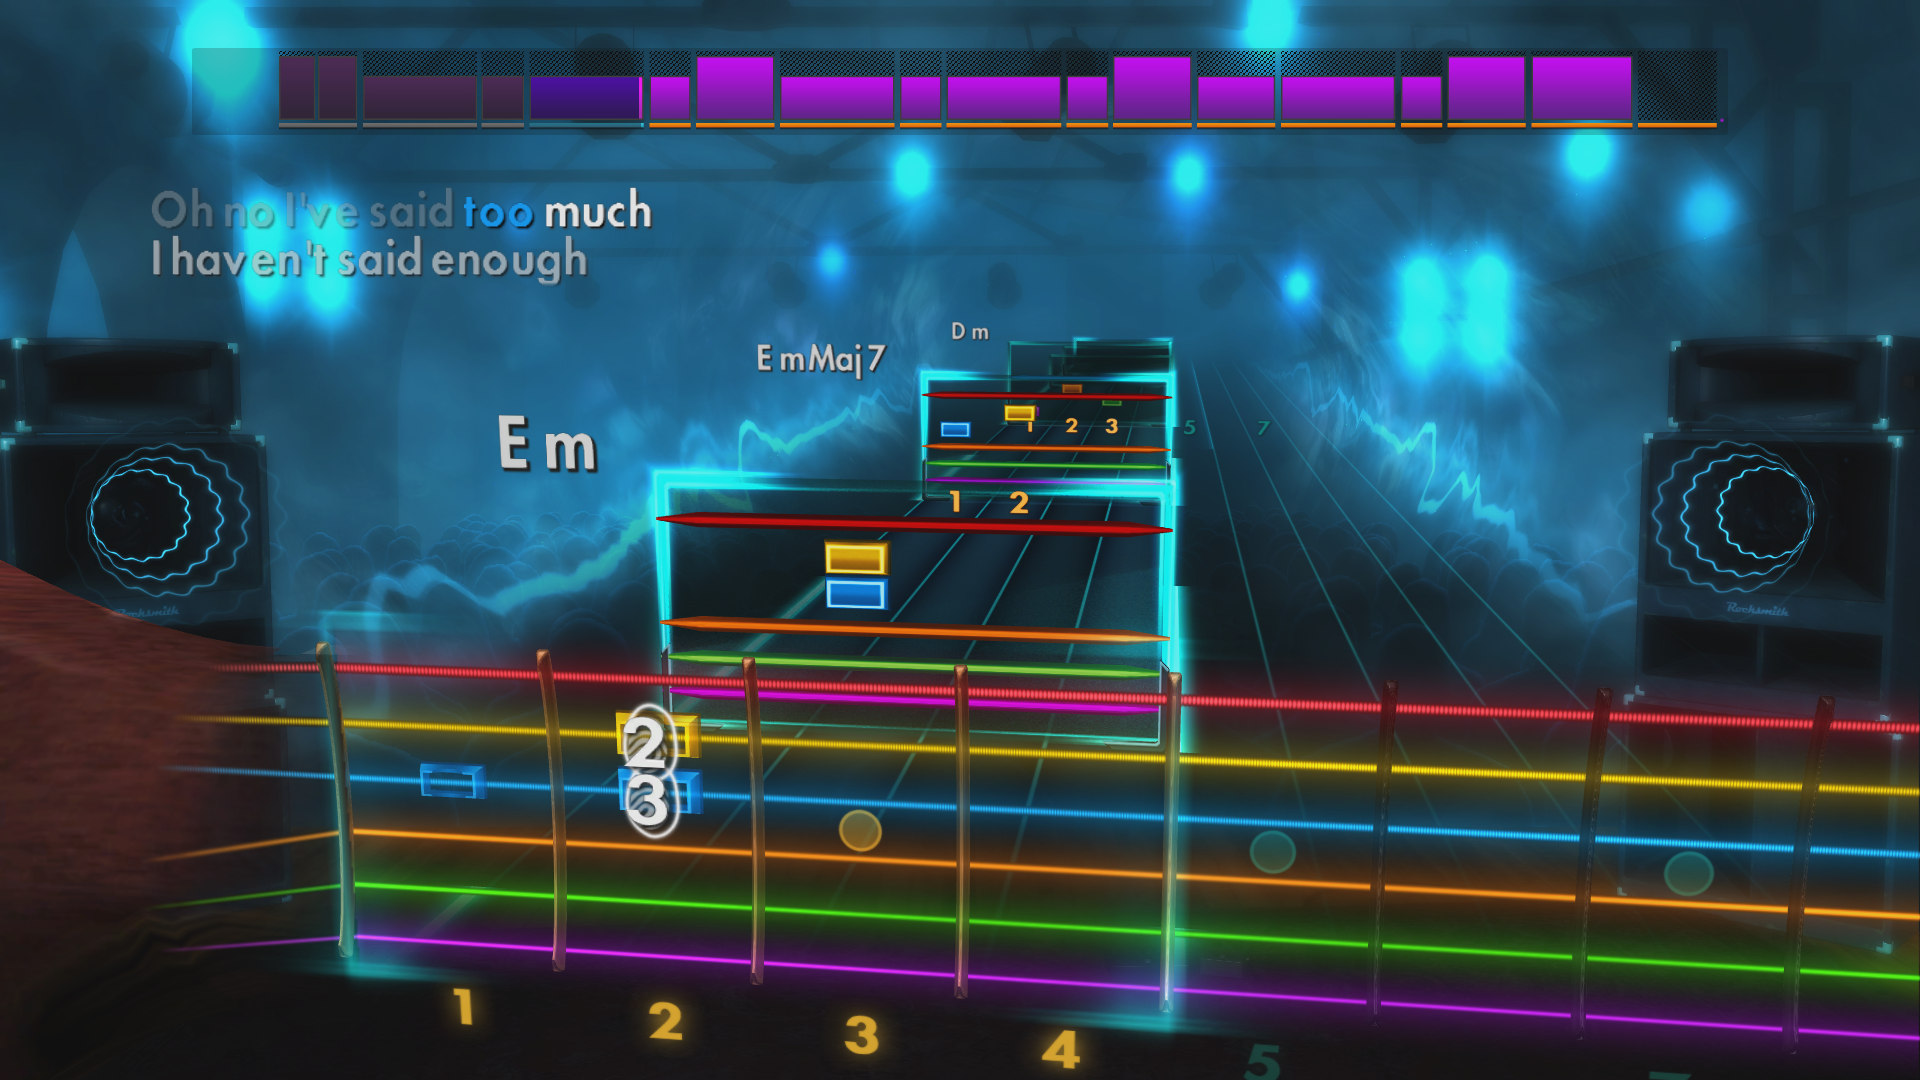 Rocksmith 2014 is coming to PS4, Xbox One in November